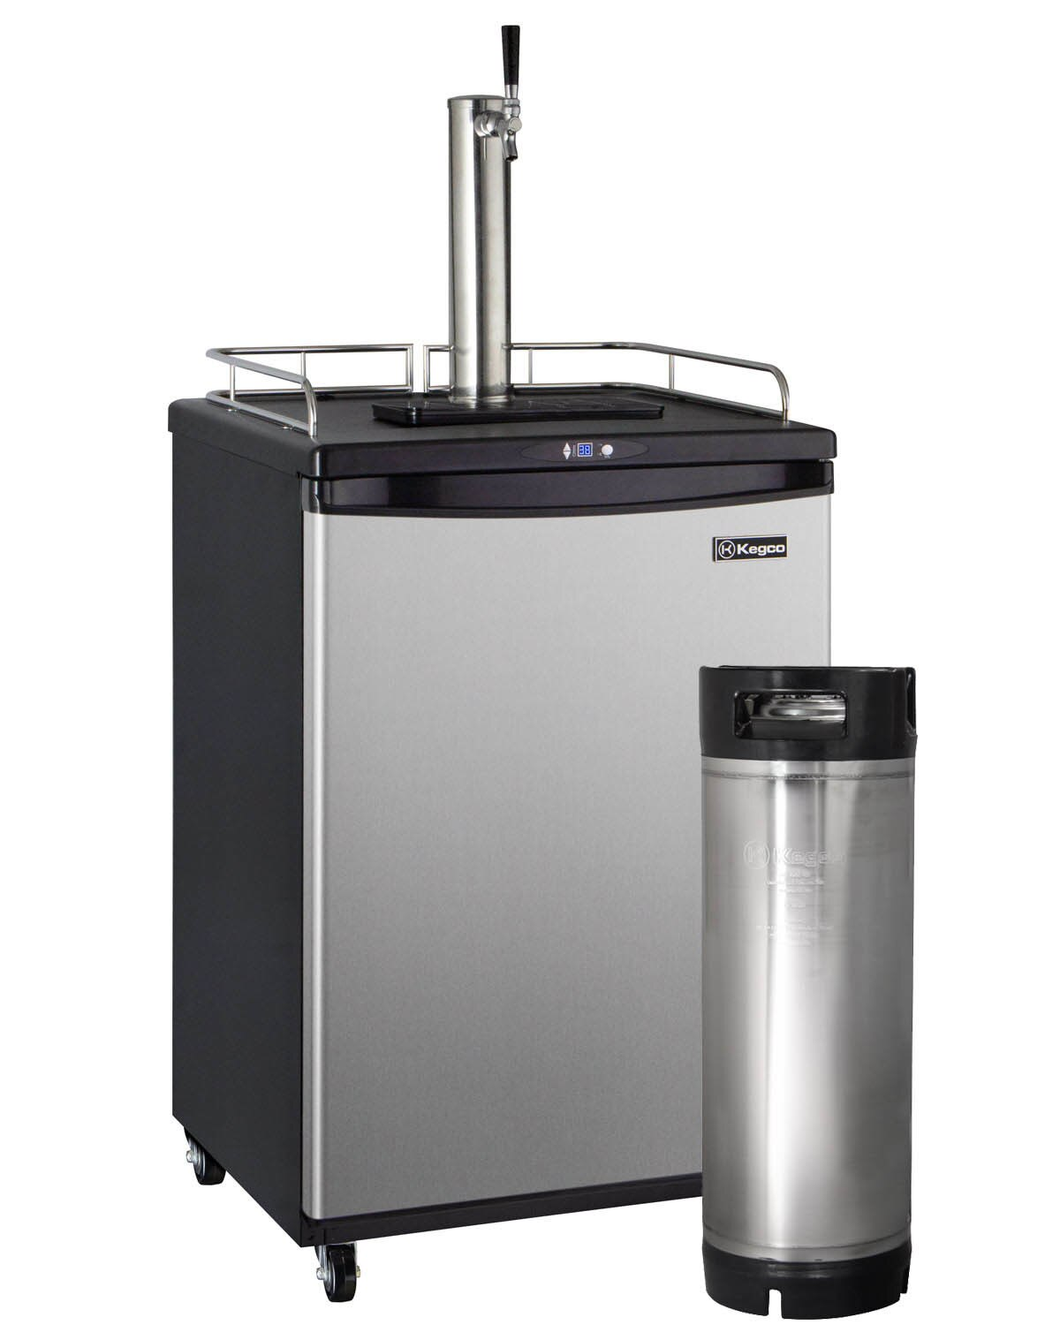 DIGITAL COMMERCIAL GRADE HOME BREW KEGERATOR WITH 5 GALLON KEG - BLACK CABINET WITH STAINLESS STEEL DOOR